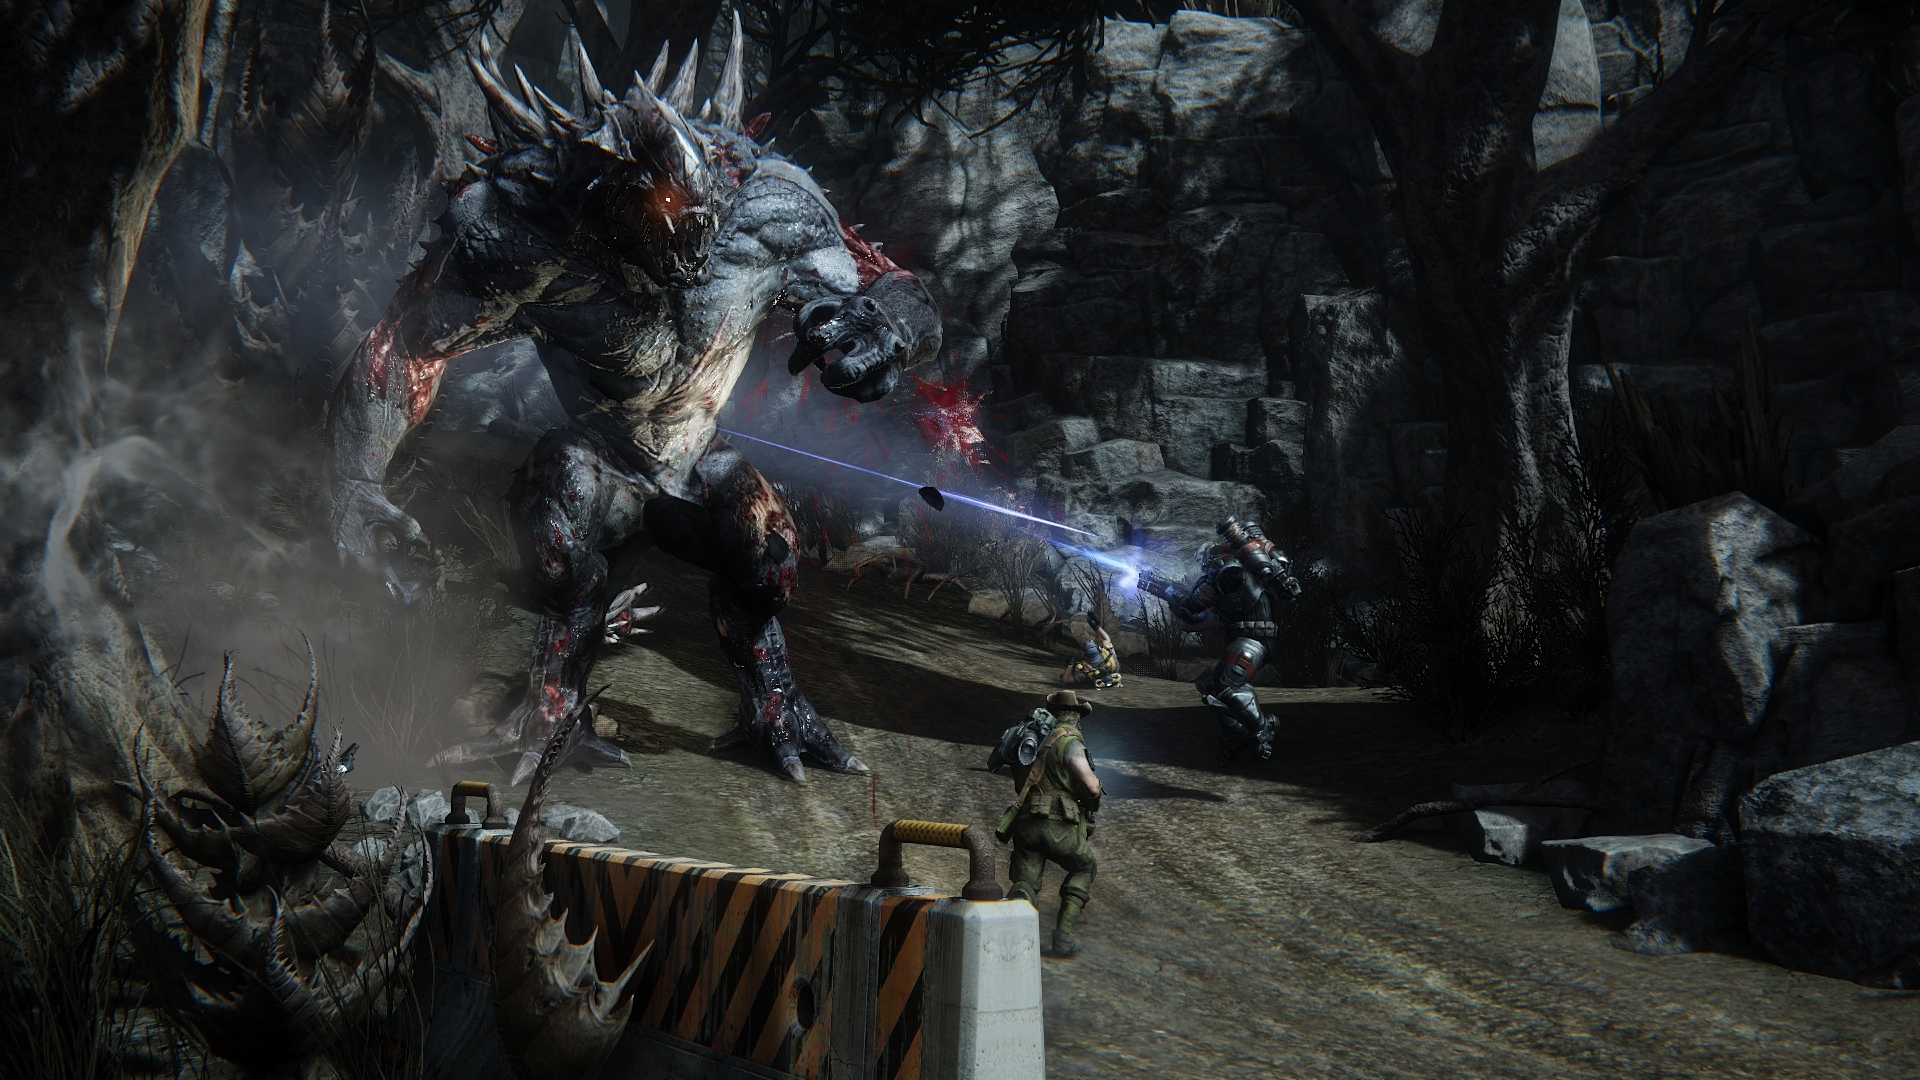 New Evolve Screens Gt GamersBook